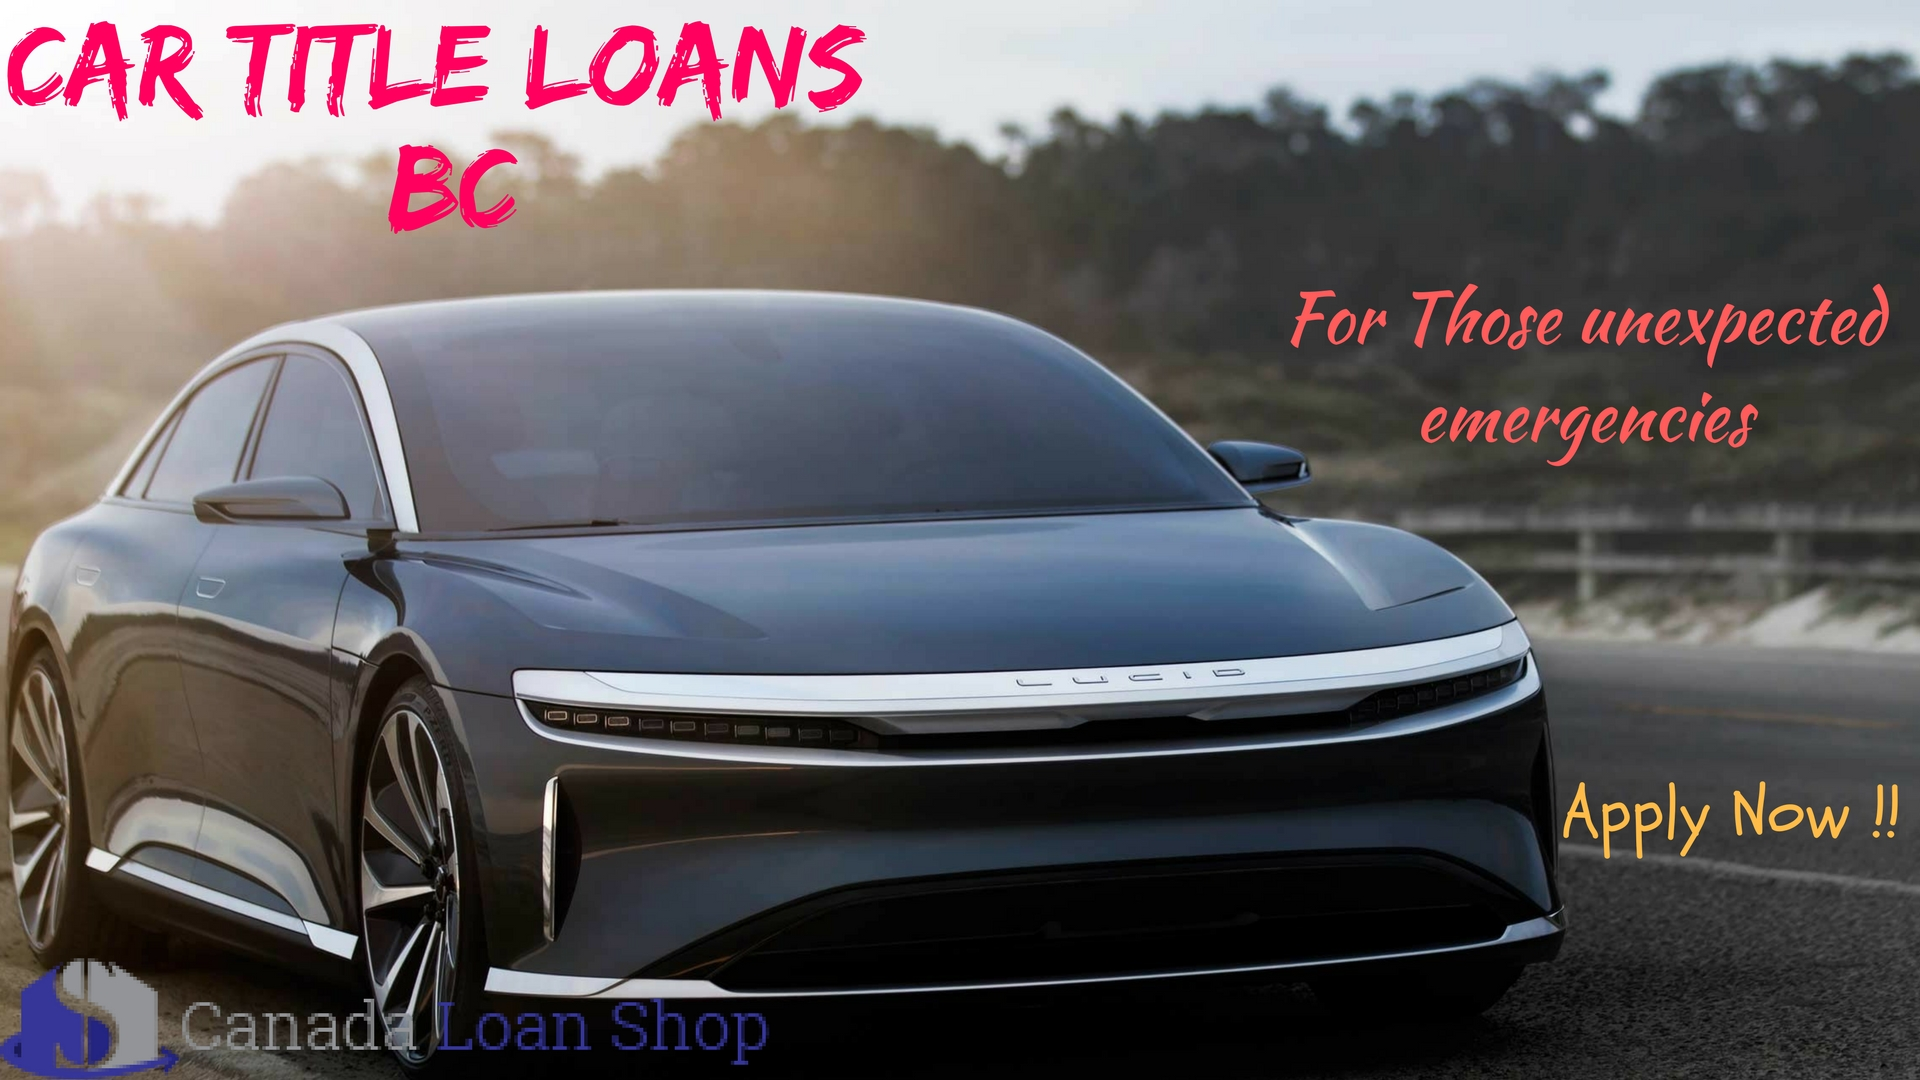 Bad Credit Loans Car Collateral